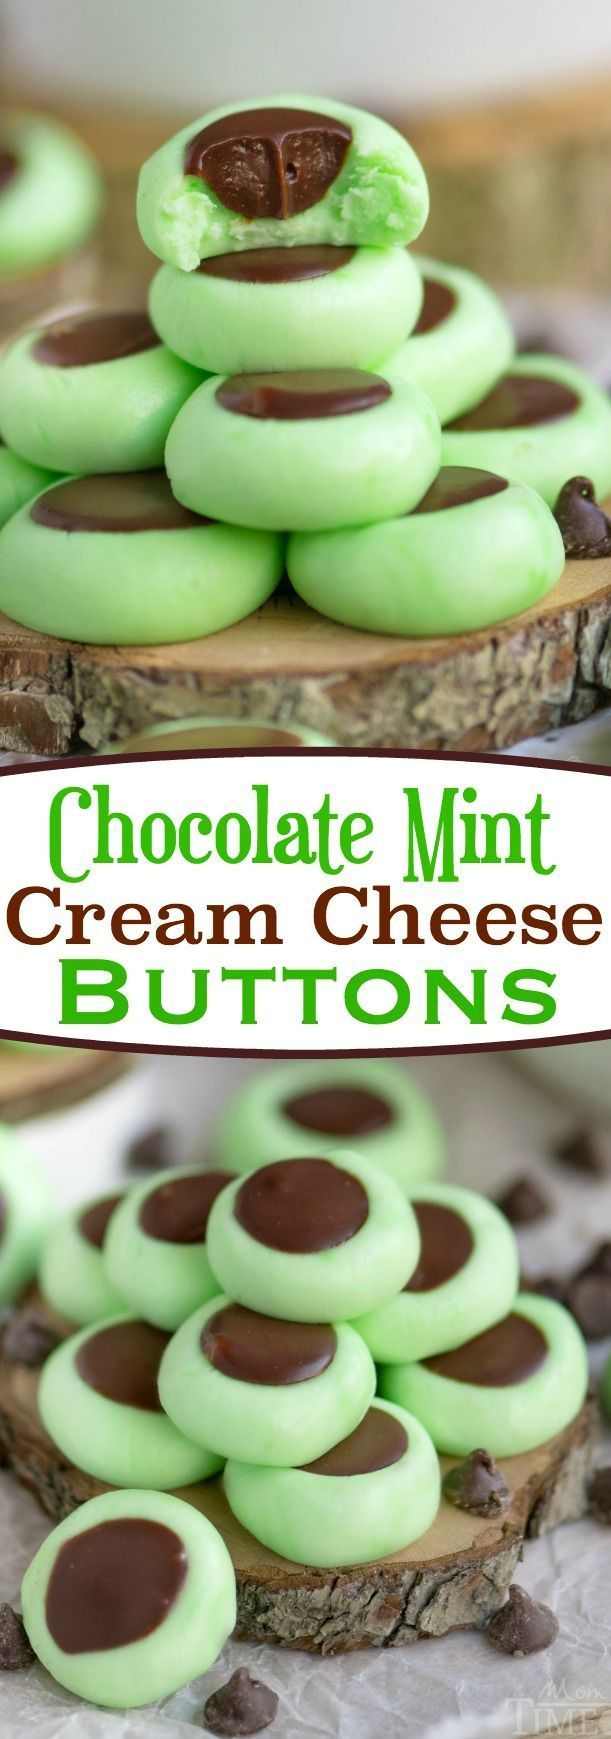 These Chocolate Mint Cream Cheese Buttons are perfect for all occasions! Lovely mint flavored cream cheese mints filled with a decadent chocolate ganache. Guaranteed to be a hit with your chocolate an